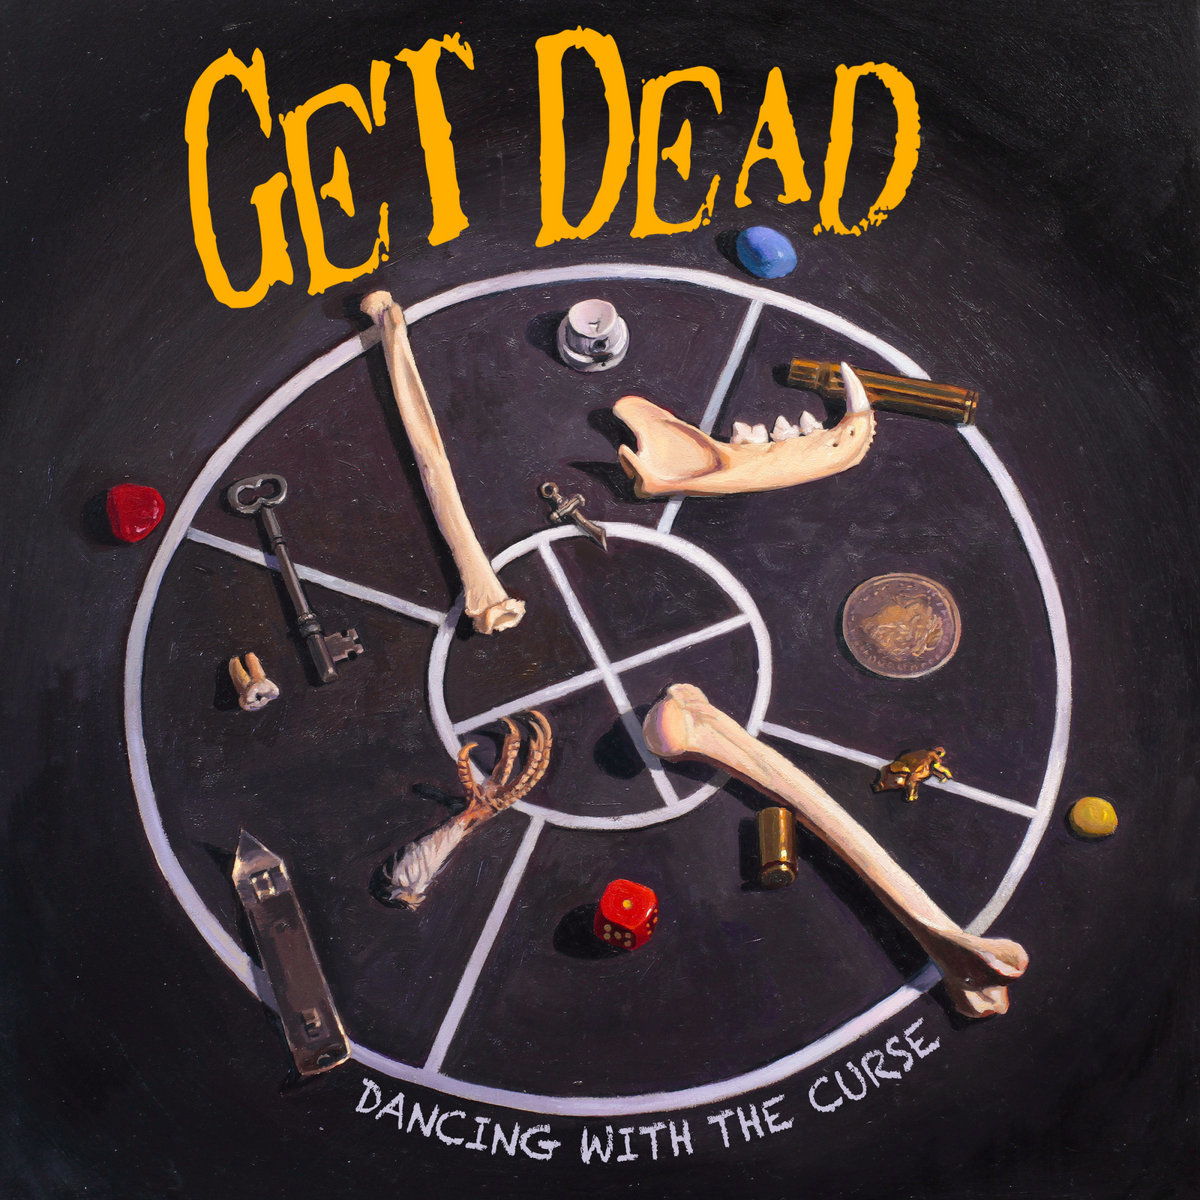 Get Dead - Dancing With The Curse